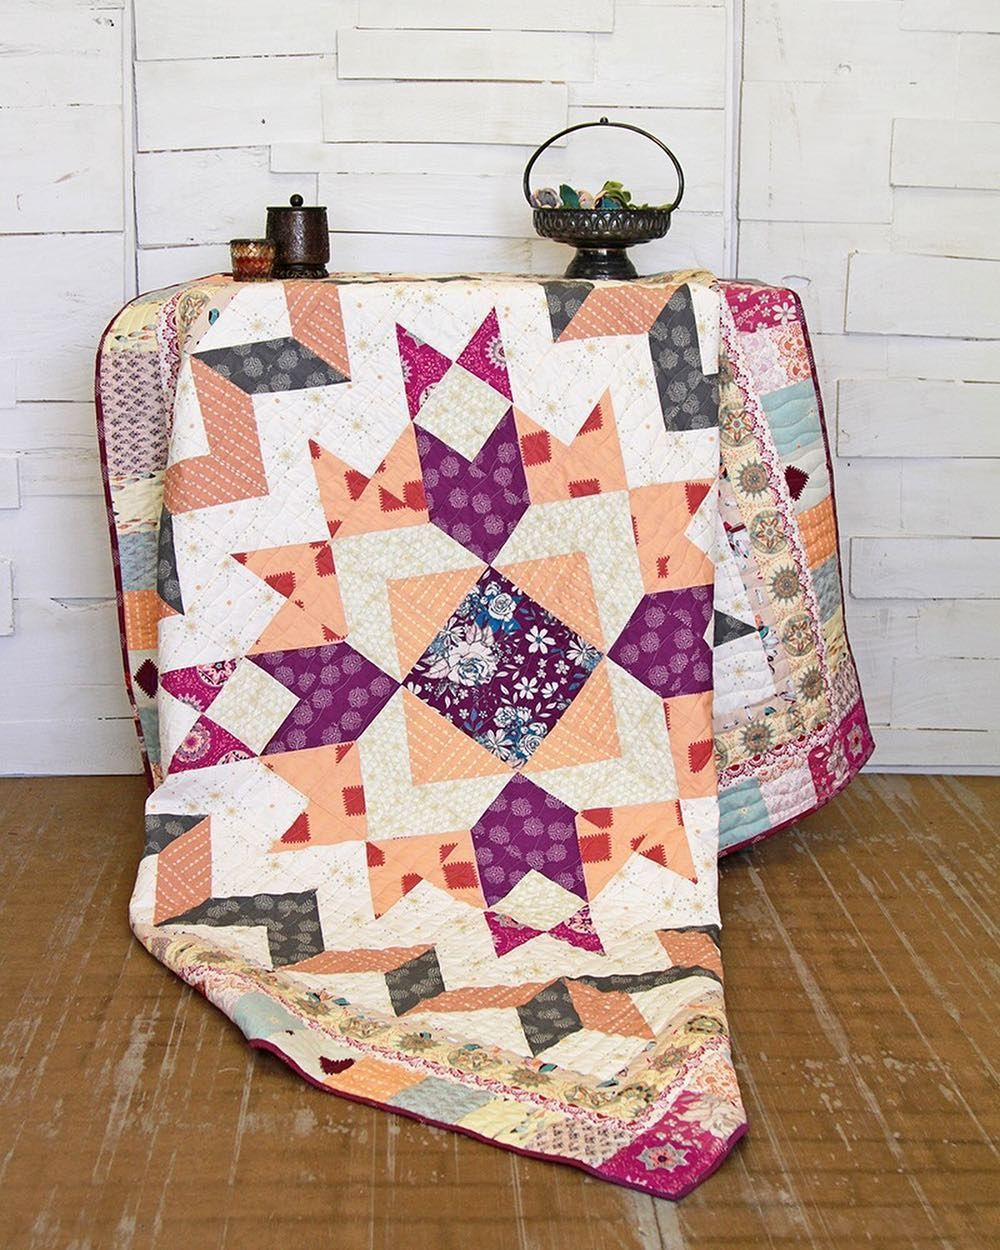 """758 Likes, 7 Comments - We Are Fabrics (@artgalleryfabrics) on Instagram: """"This dreamy quilt is waiting for you to sew it! Find the free pattern on page 46 of the lookbook…"""""""